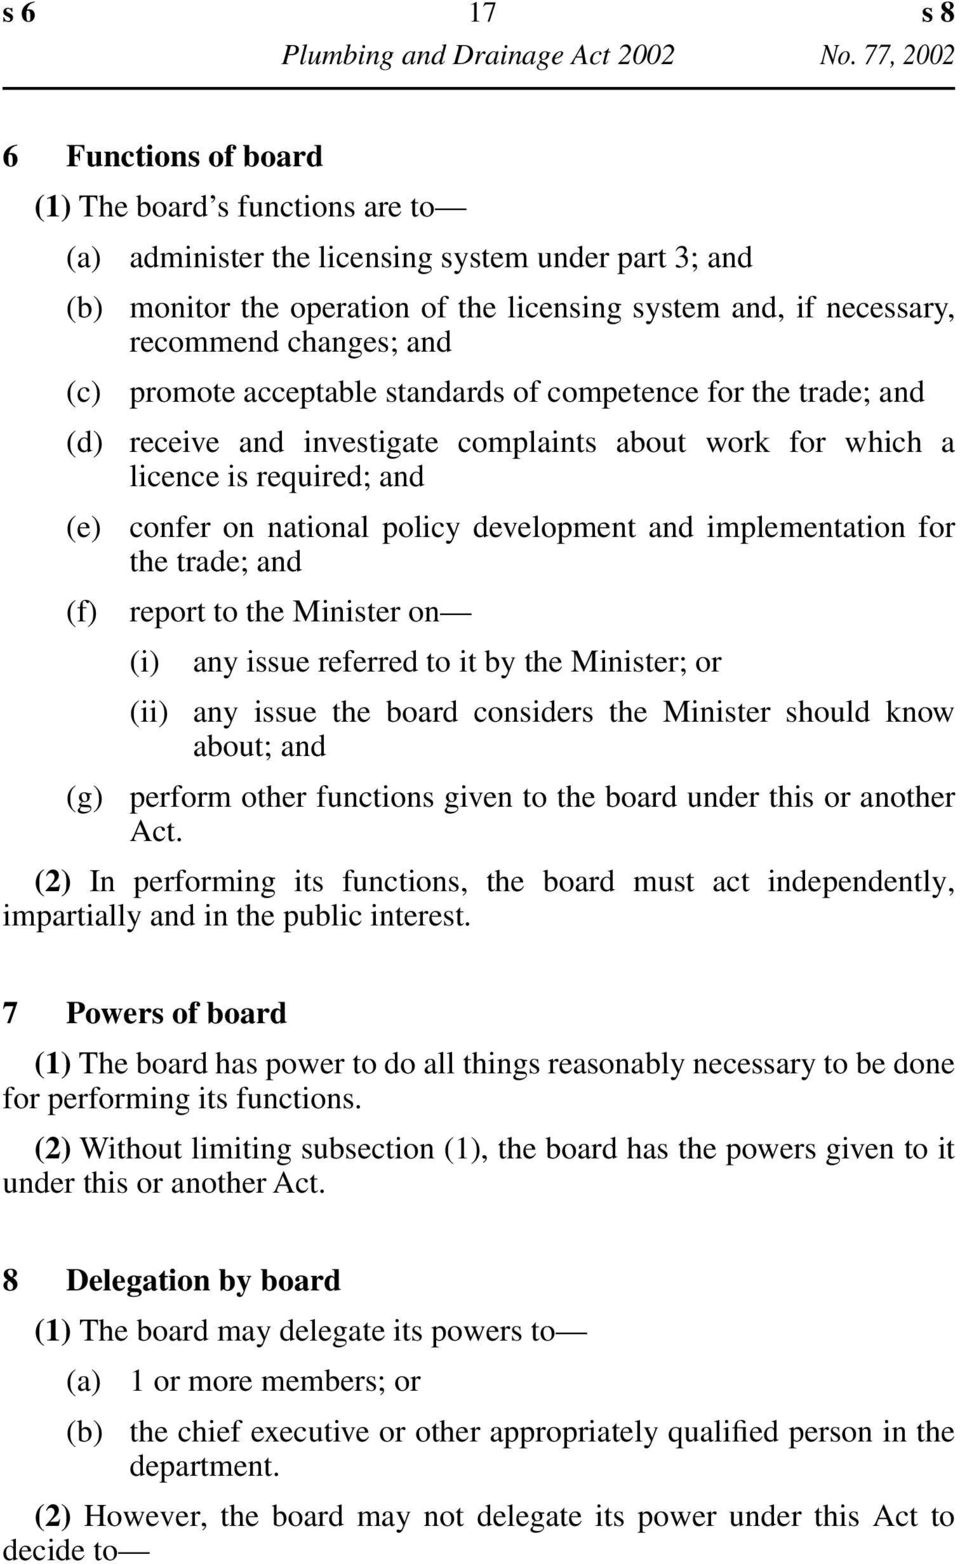 development and implementation for the trade; and (f) report to the Minister on (i) any issue referred to it by the Minister; or (ii) any issue the board considers the Minister should know about; and